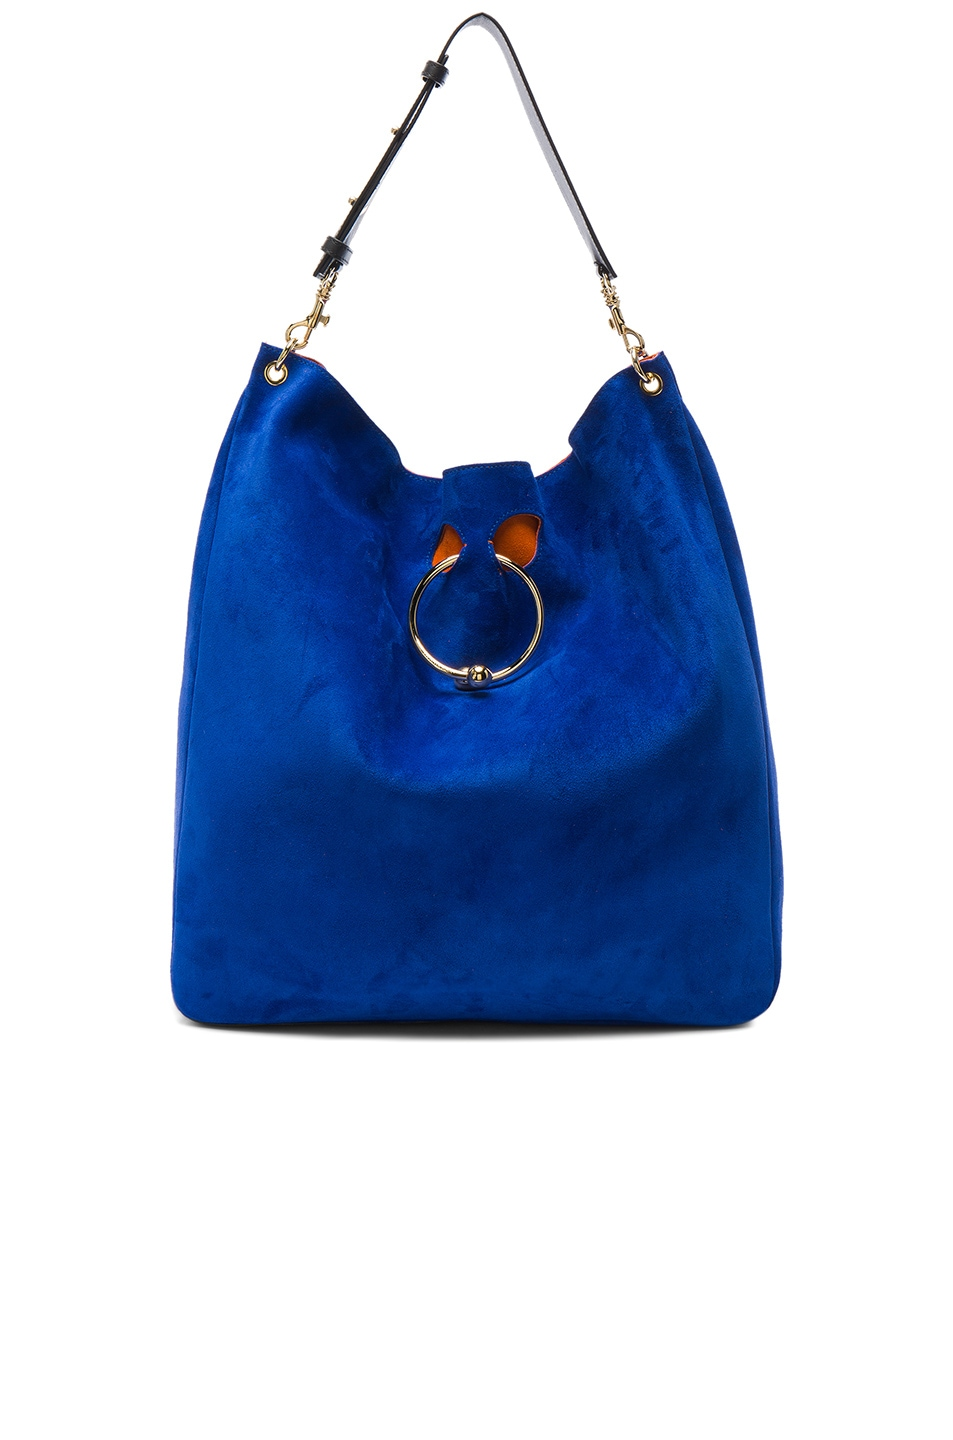 Image 1 of J.W. Anderson Large Pierce Hobo Bag in Royal Blue